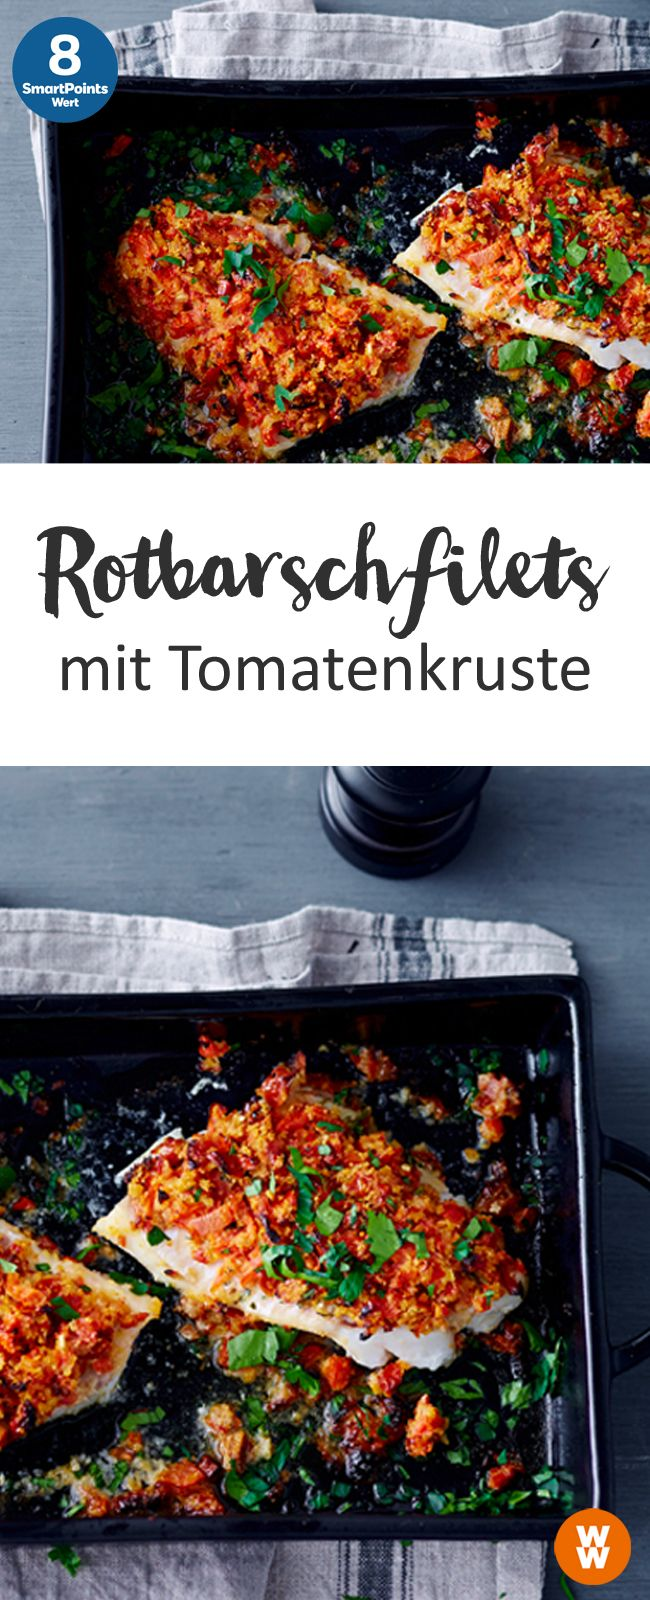 Rotbarschfilets mit Tomatenkruste | 2 Portionen, 8 SmartPoints/Portion, Weight Watchers, Fisch, fertig in 30 min. (Fitness Recipes)